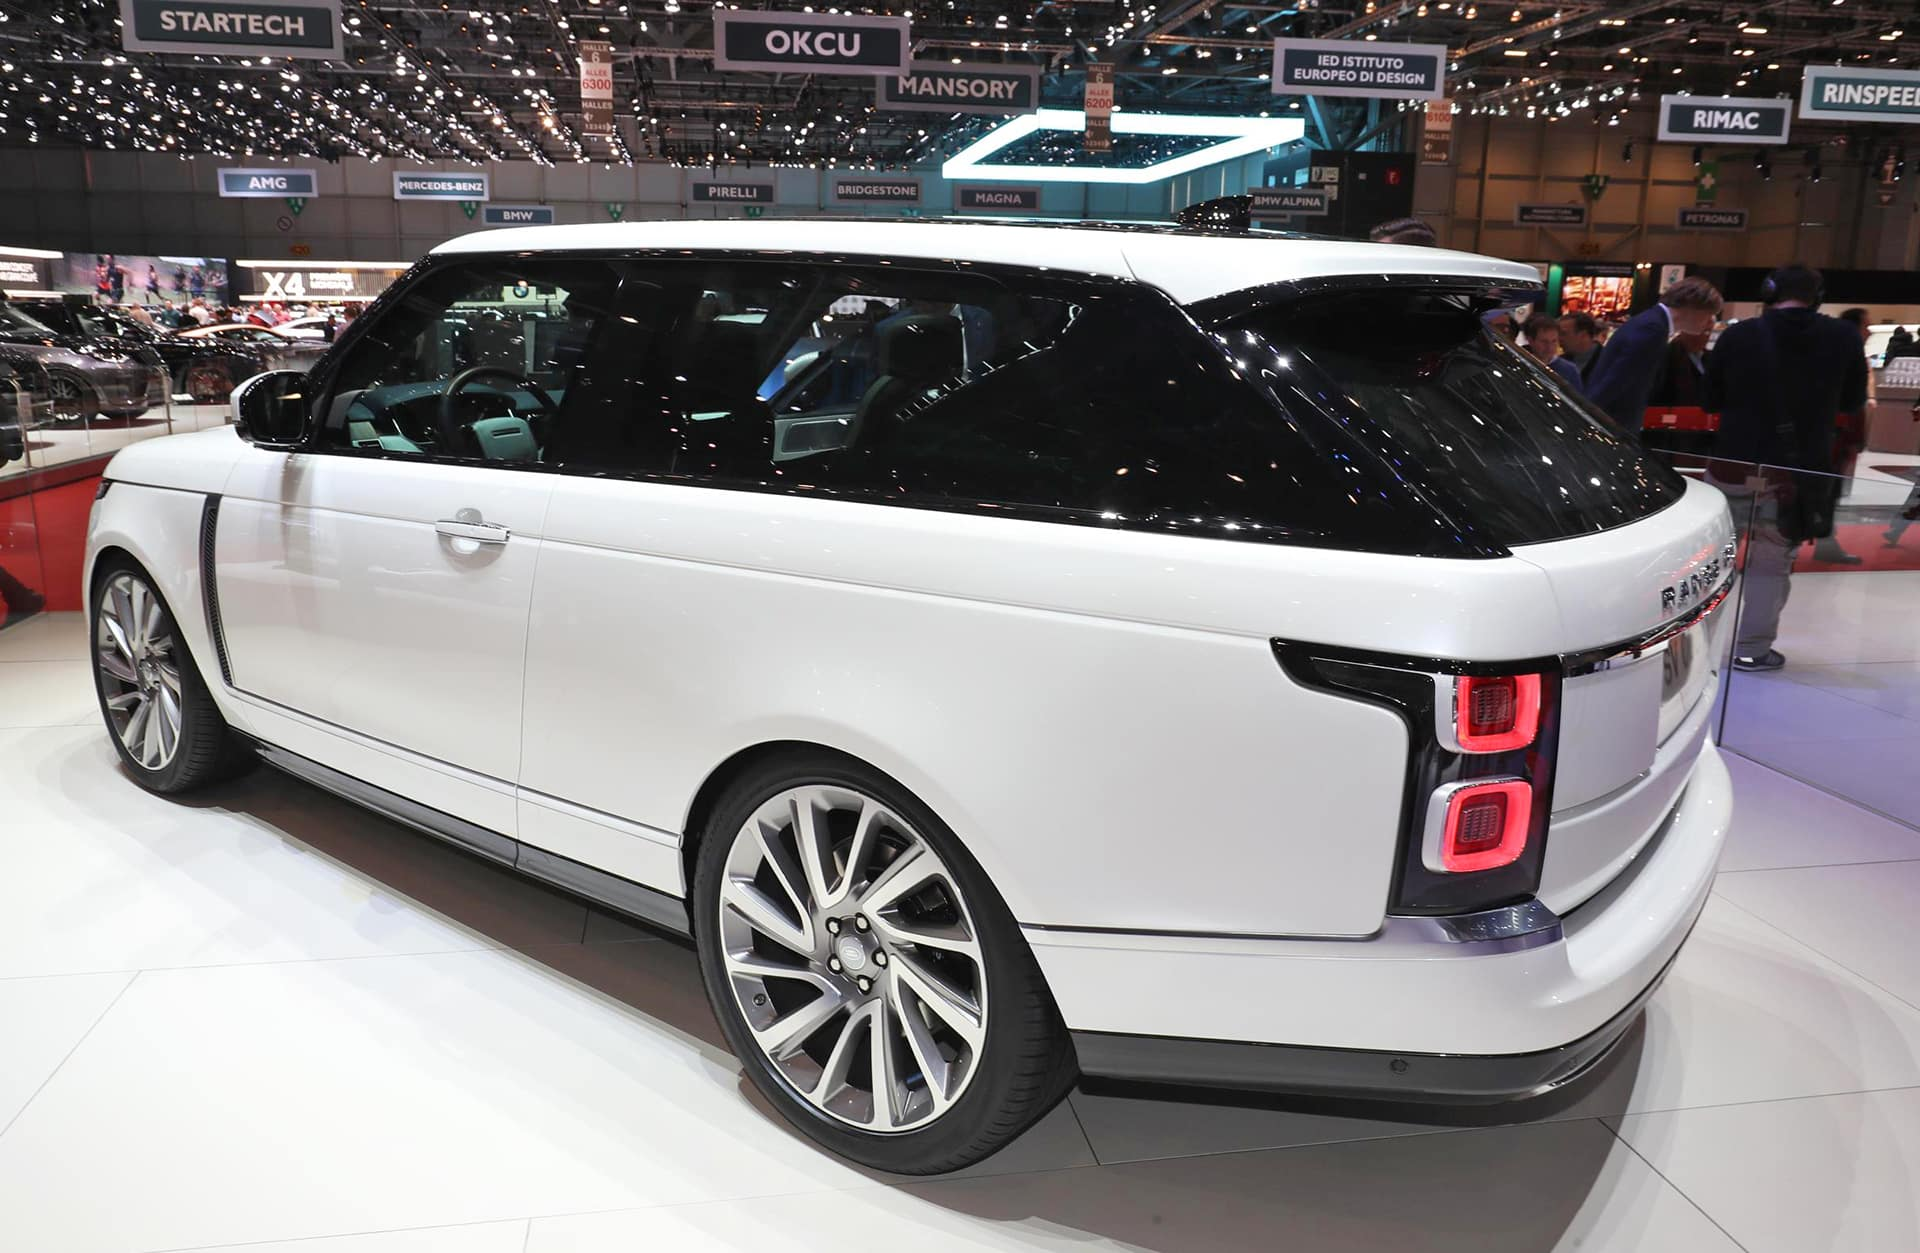 Geneva: Upmarket aim for Range Rover SV Coupe 2